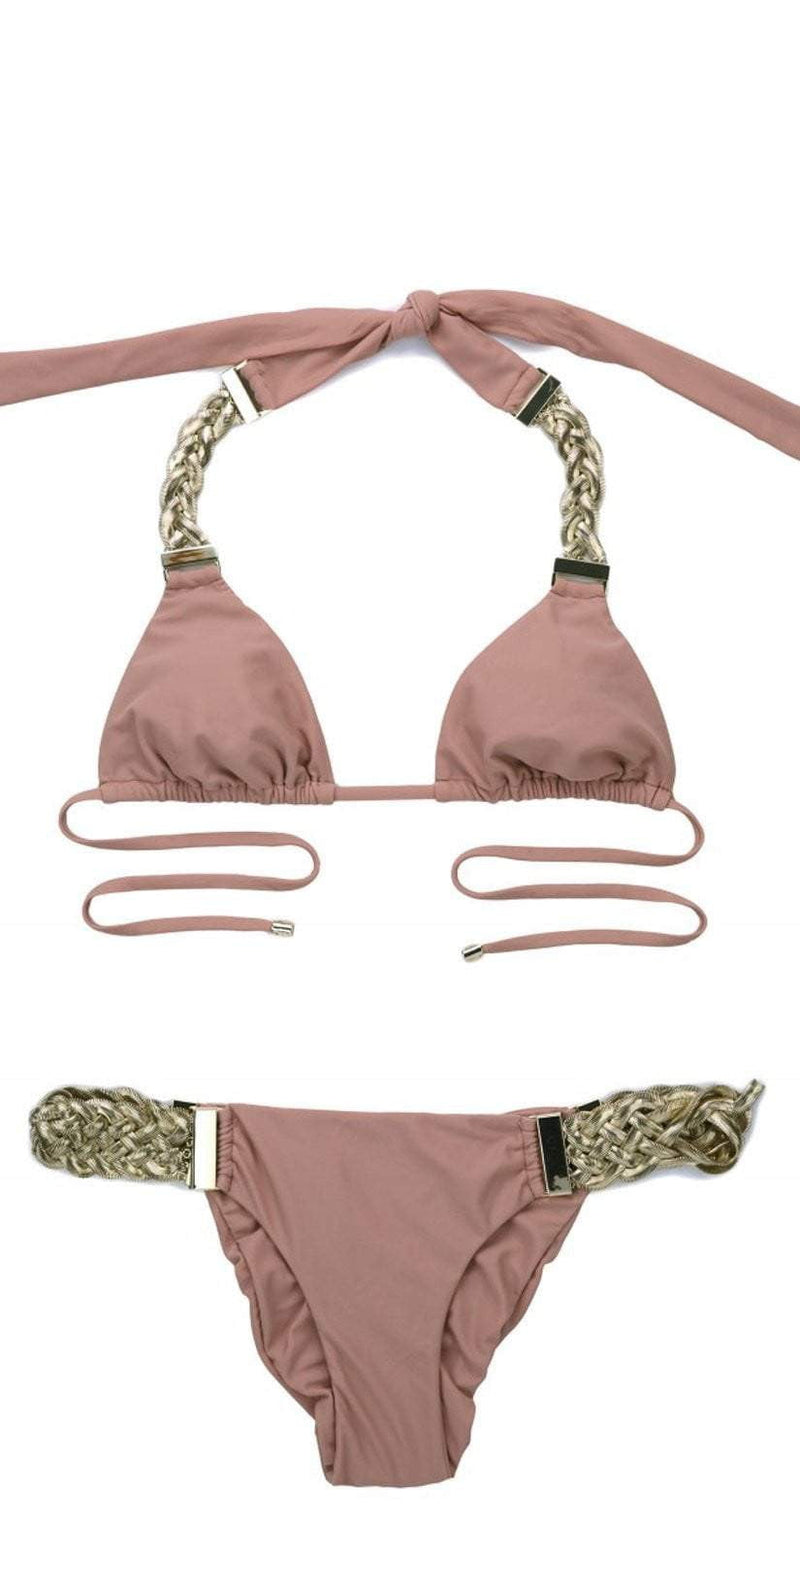 Beach Bunny Alexa Triangle Top in Whiskey Rose B18100T1-WHRS: